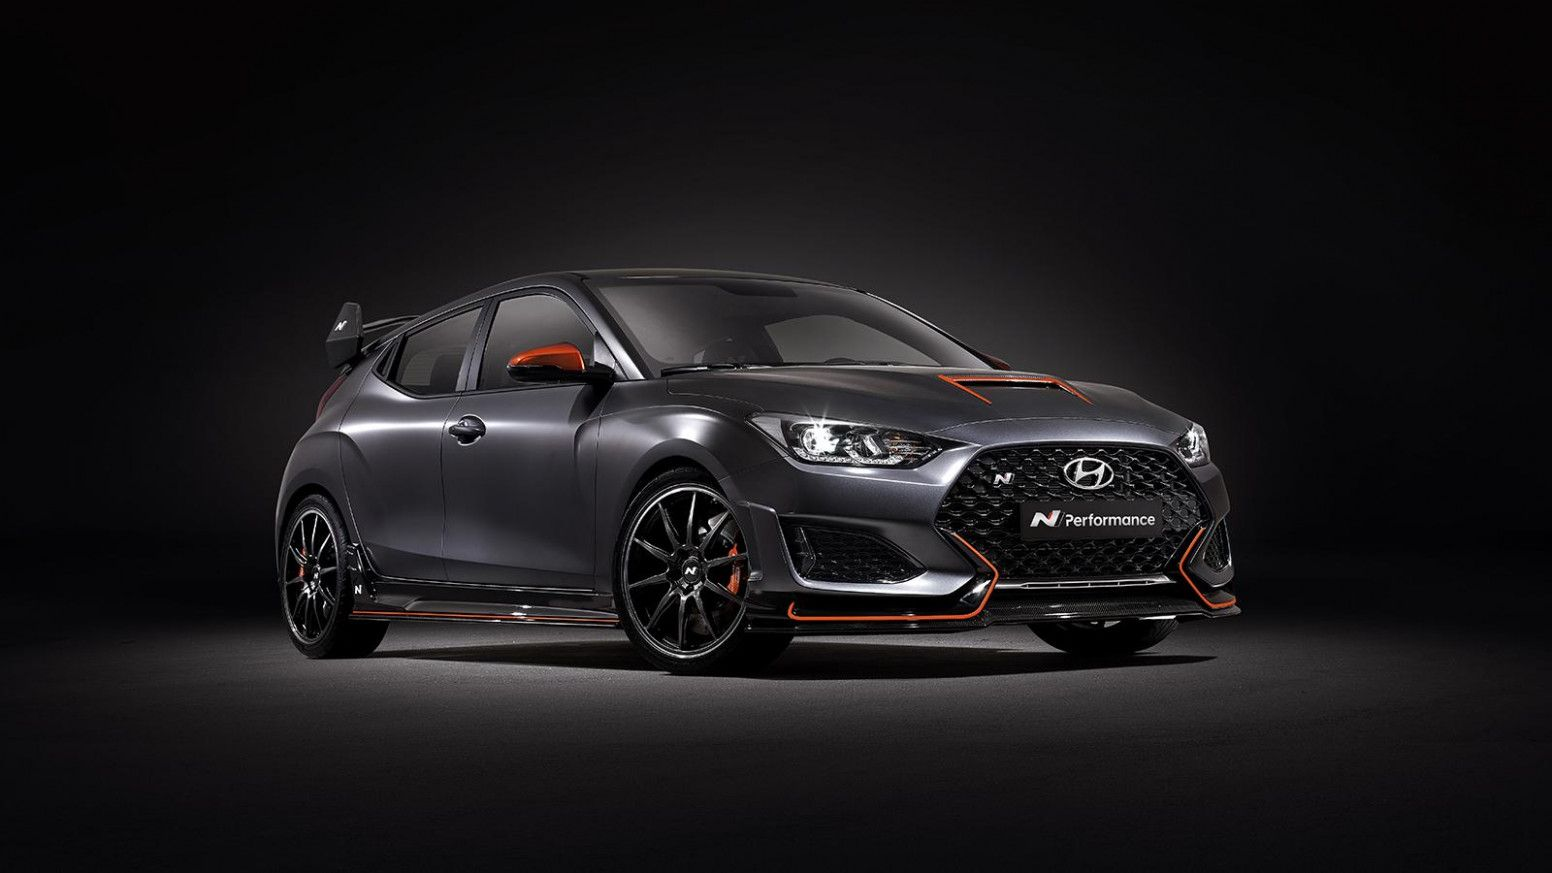 2020 Hyundai Veloster Quarter Mile Time Specs And Review 2020 Hyundai Veloster Quarter Mile Time Pleasant In Order To Our Blog In This Parti Hyundai Veloster Honda Civic Type R Sport Seats